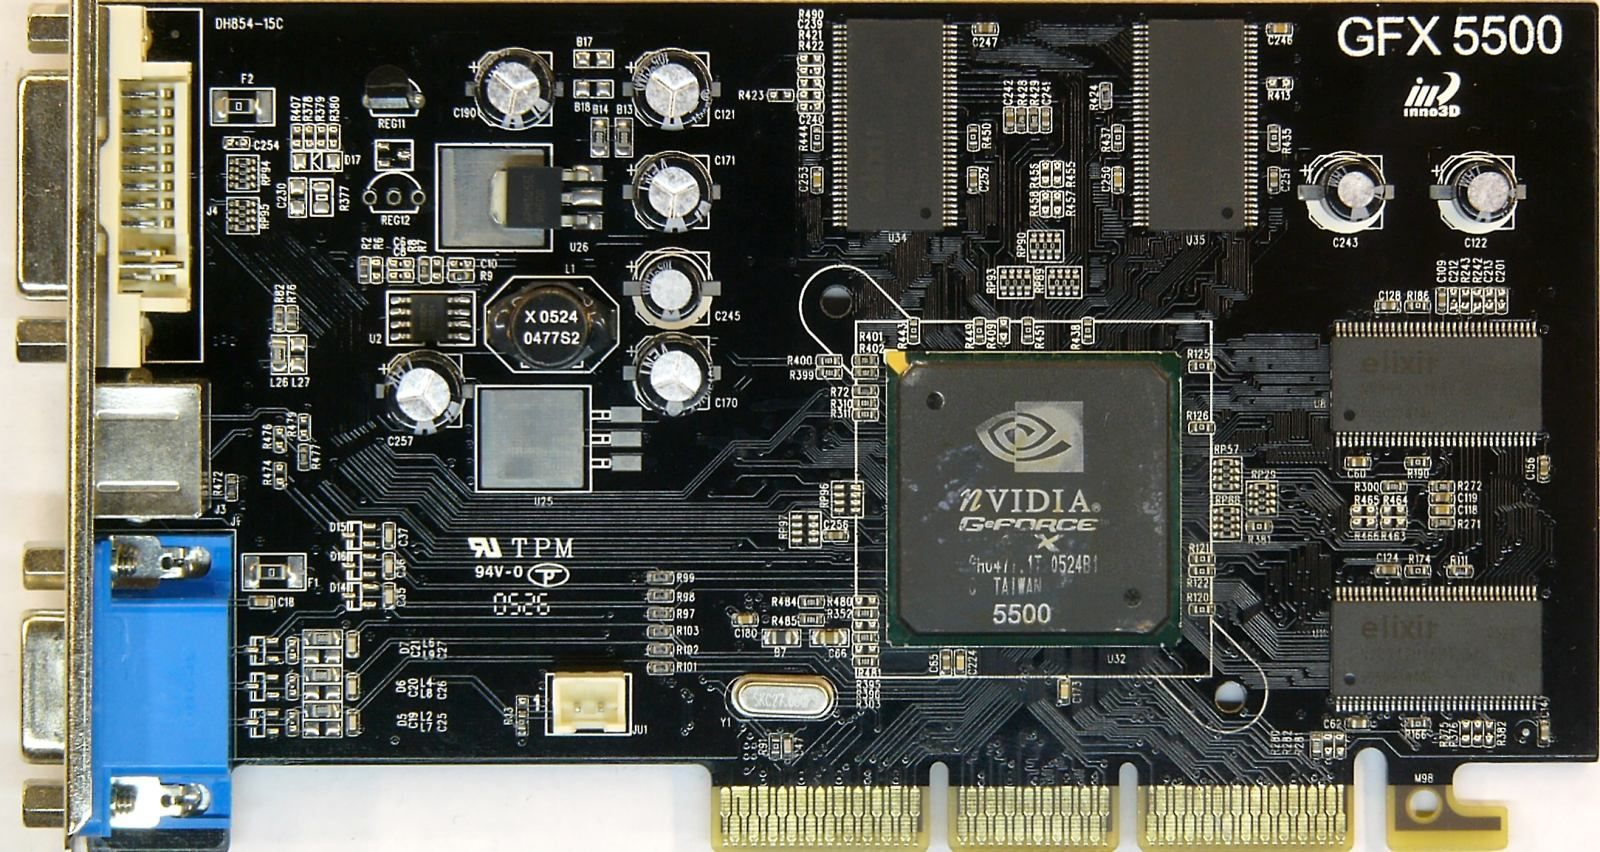 INNO3D FX5500 VIDEO CARD WINDOWS 7 DRIVER DOWNLOAD